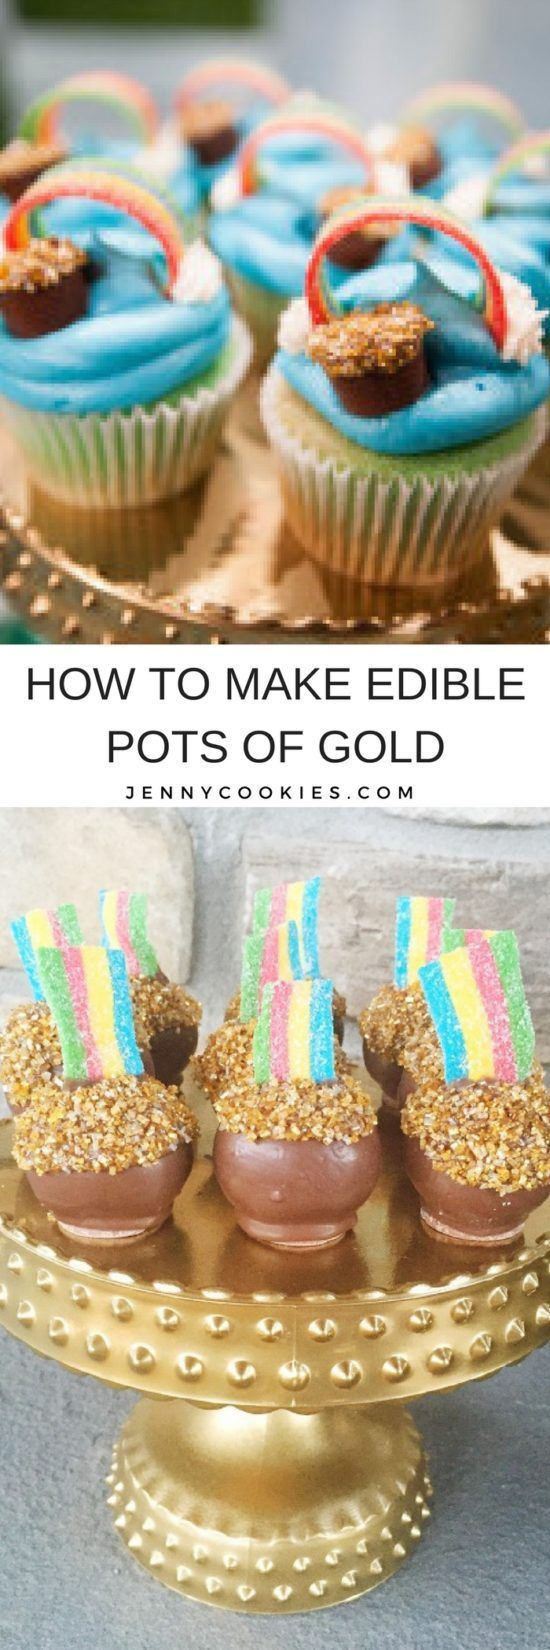 How to Make Edible Pots of Gold | St. Patrick's Day desserts | St. Patrick's Day cupcake recipe | pot o' gold desserts | pot of gold cupcakes || JennyCookies.com #potofgold #stpatricksdaydessert #stpatricksday